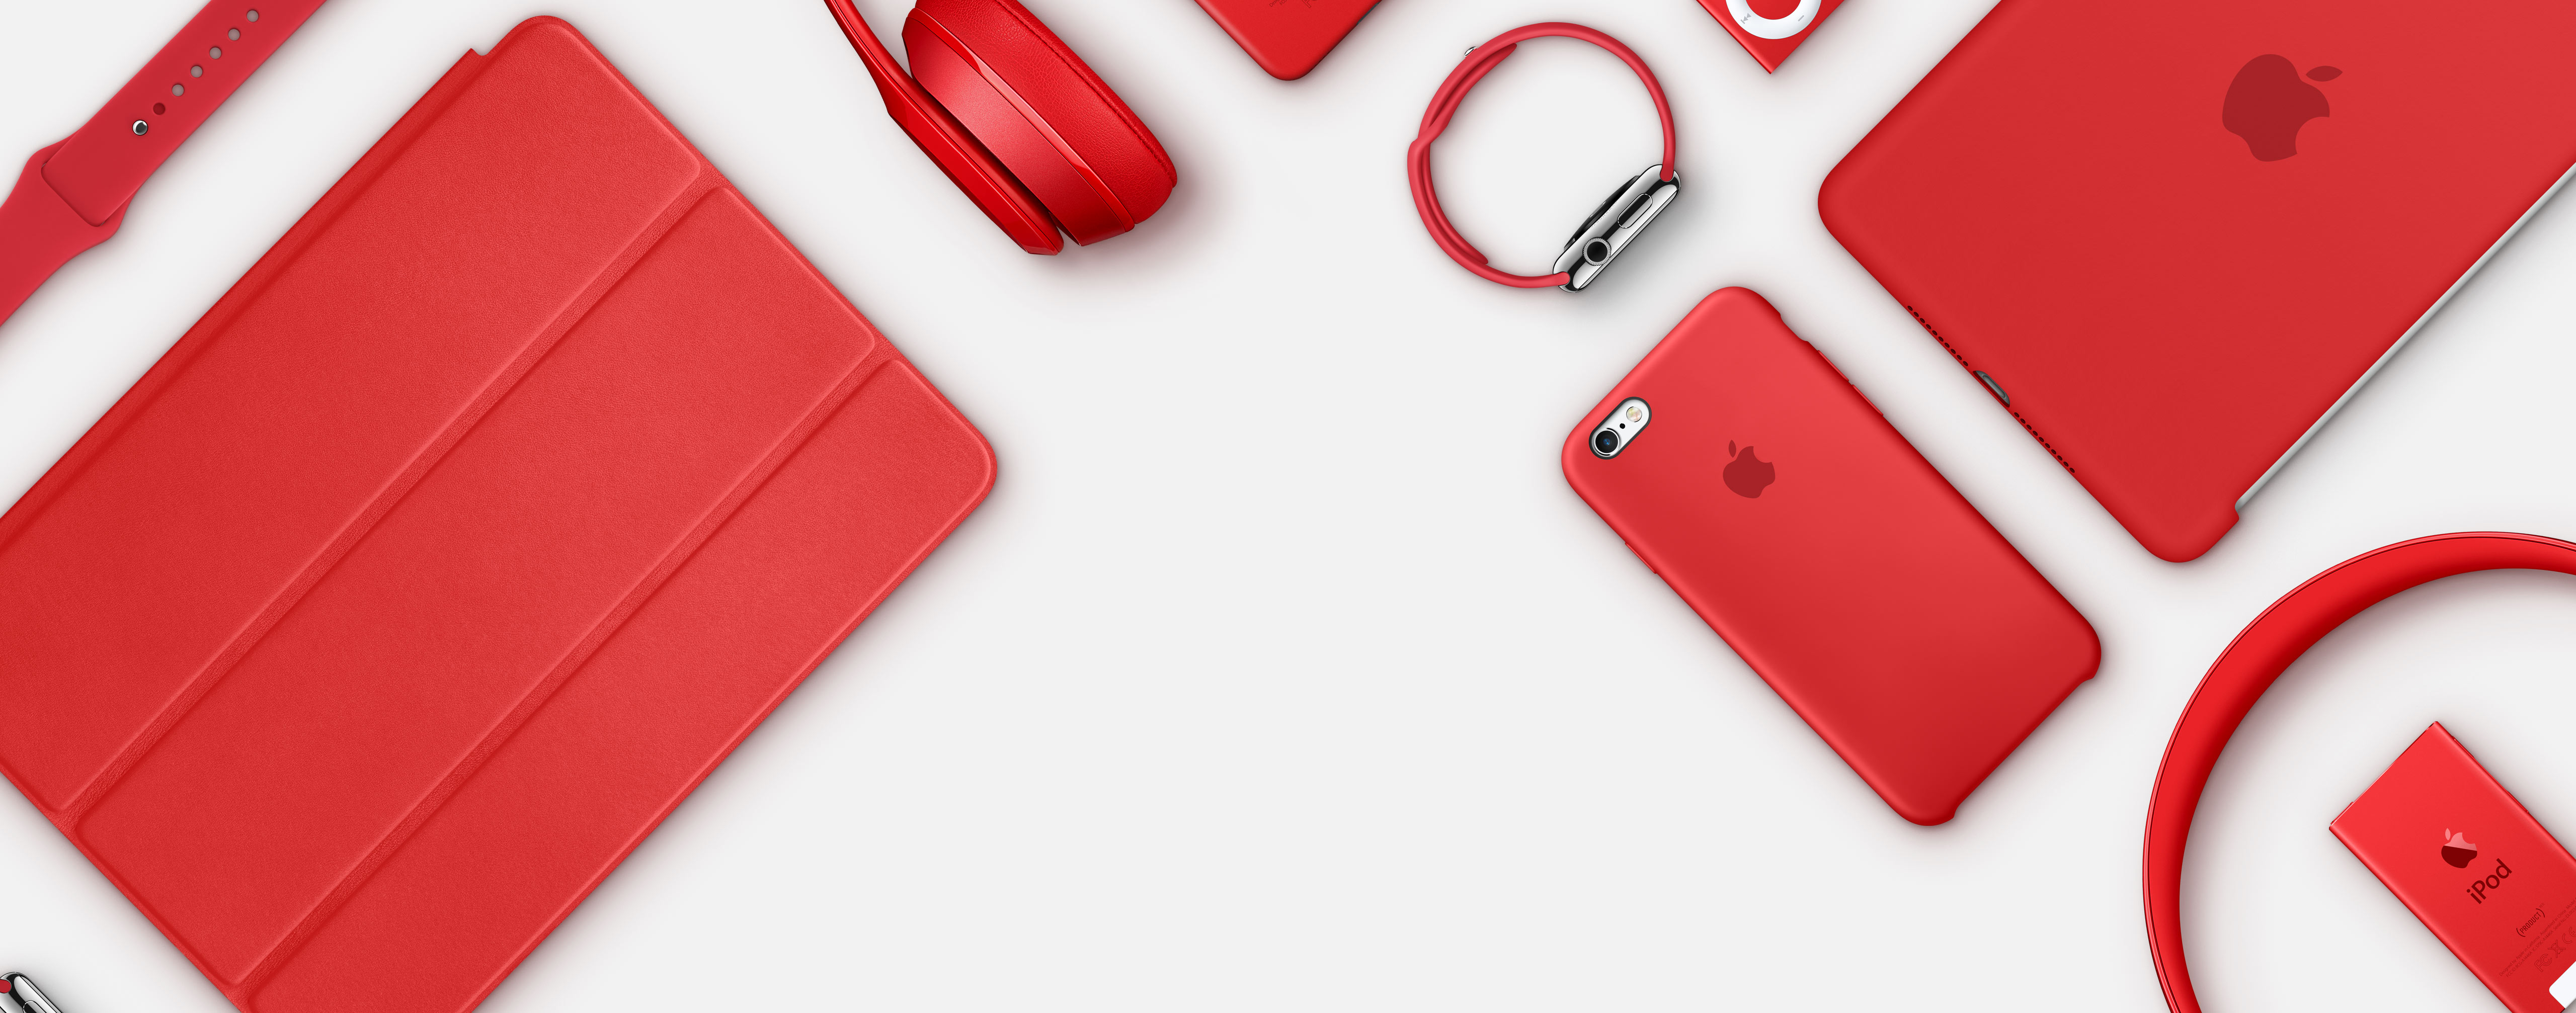 Iphone X Notchless Wallpaper World Aids Day Product Red Inspired Wallpapers